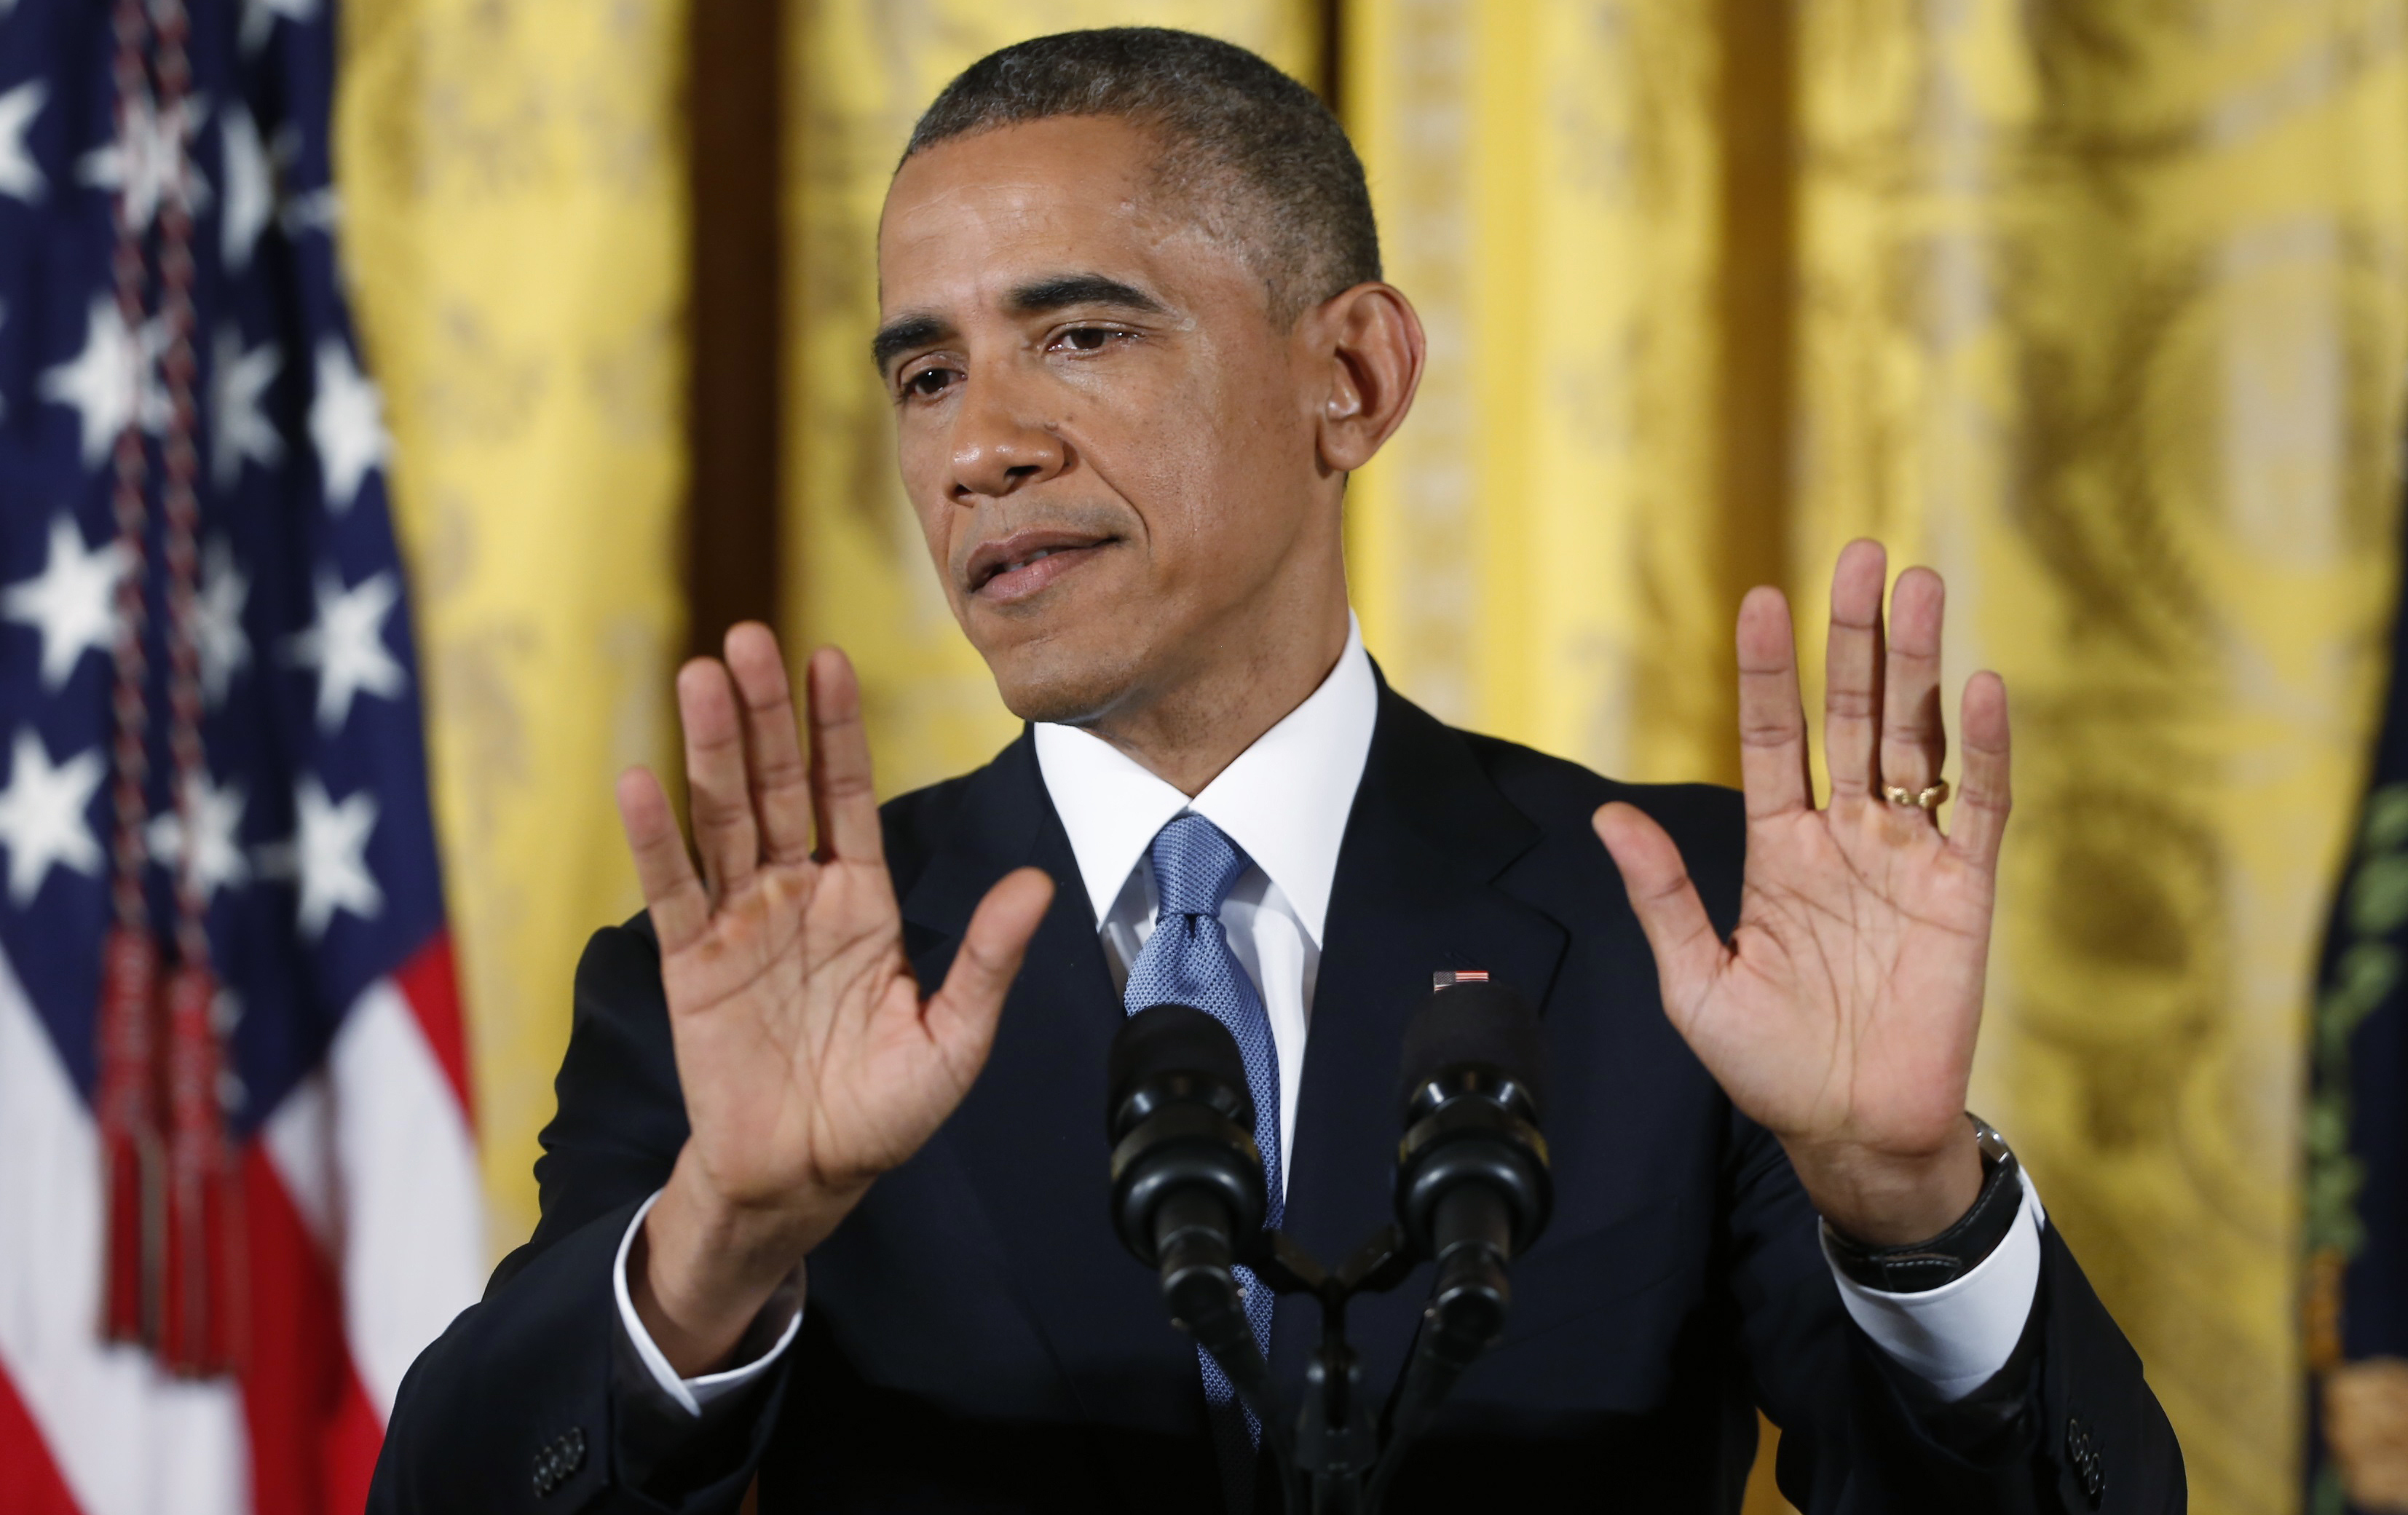 Image result for obama hand in the air